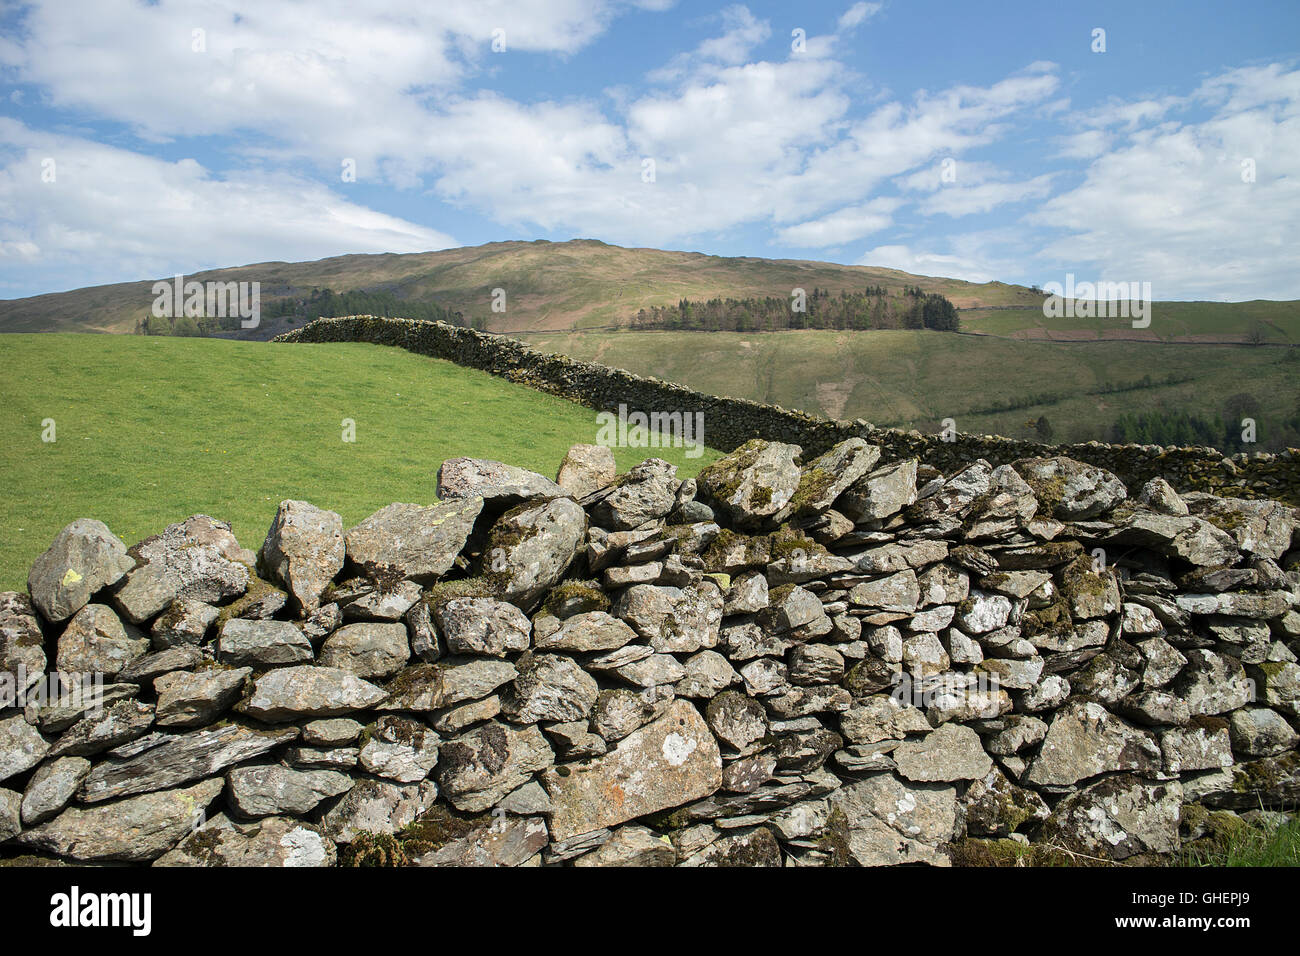 A dry stone wall with fells in background, Troutbeck (near Windermere), Cumbria - Stock Image